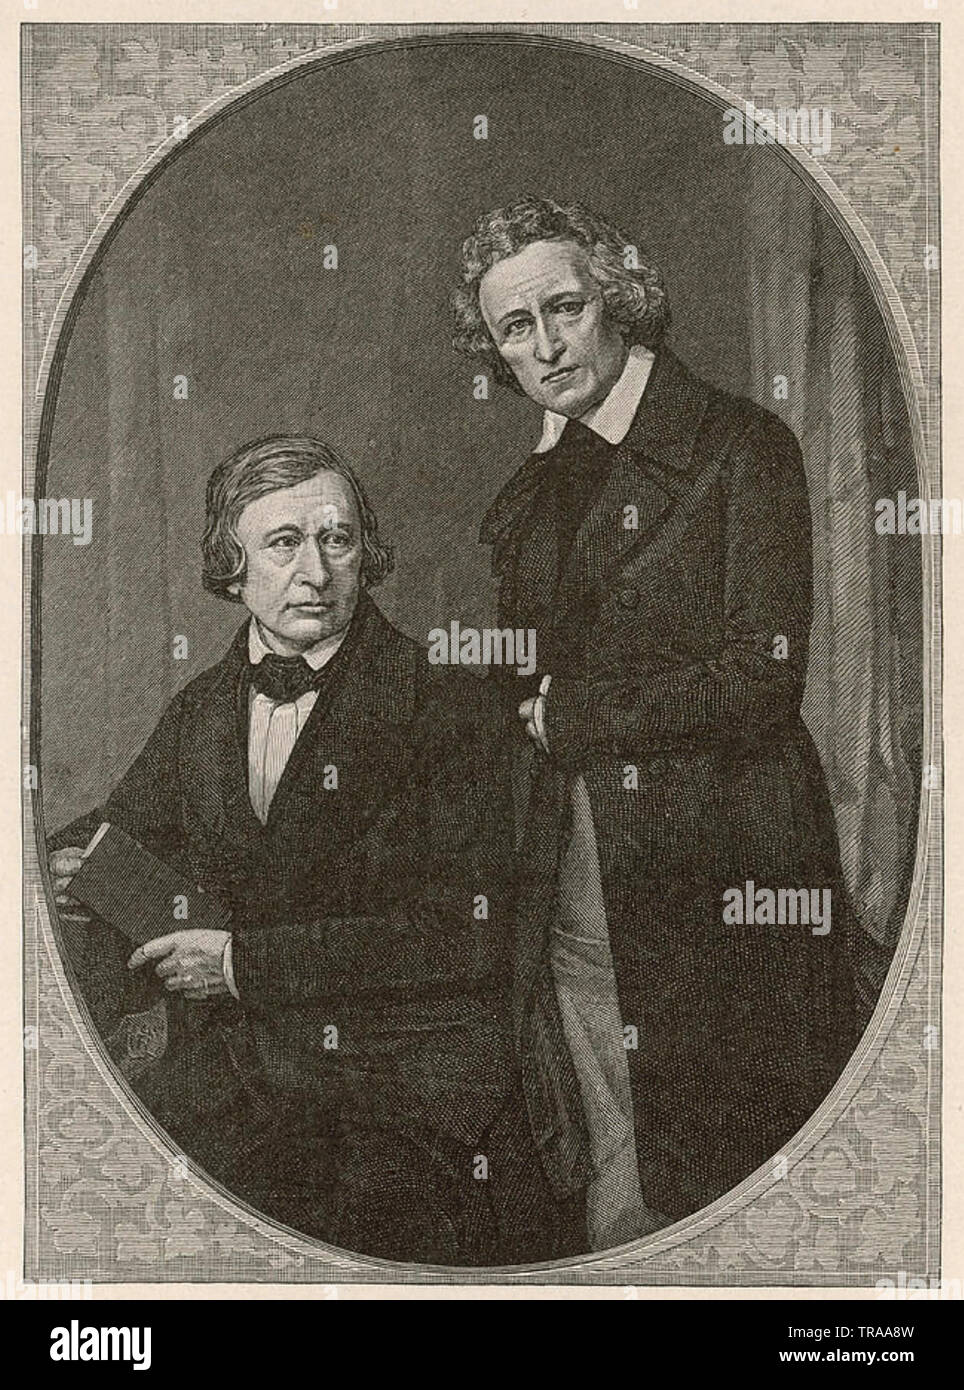 BROTHERS GRIMM German academics and folk story collectors with Wilhelm at left and Jacob about 1850 - Stock Image